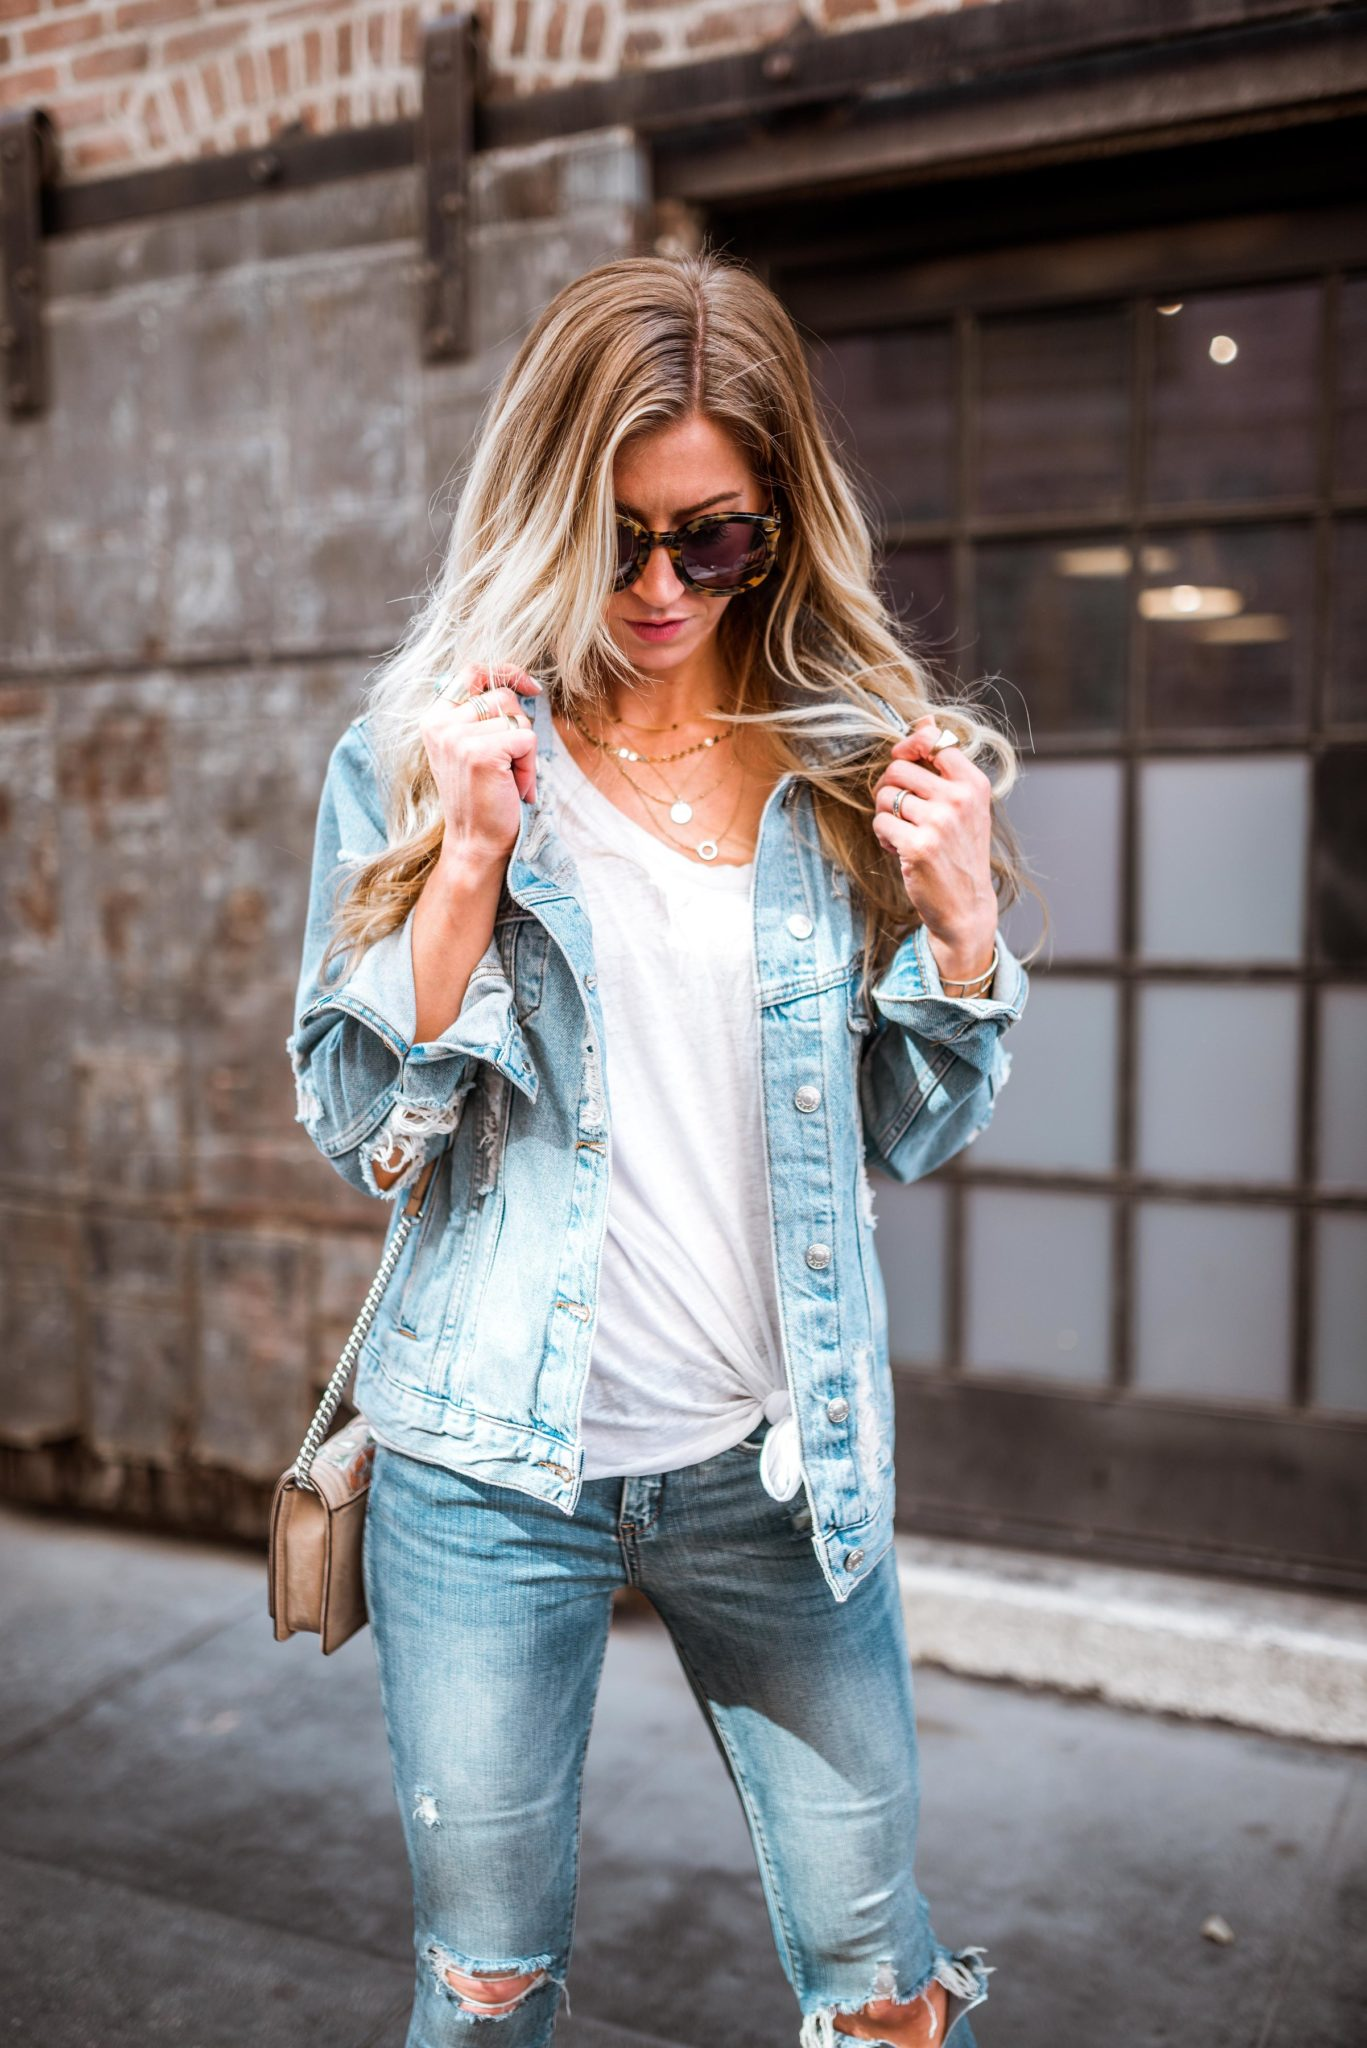 Leanne Barlow is featuring the distressed trend